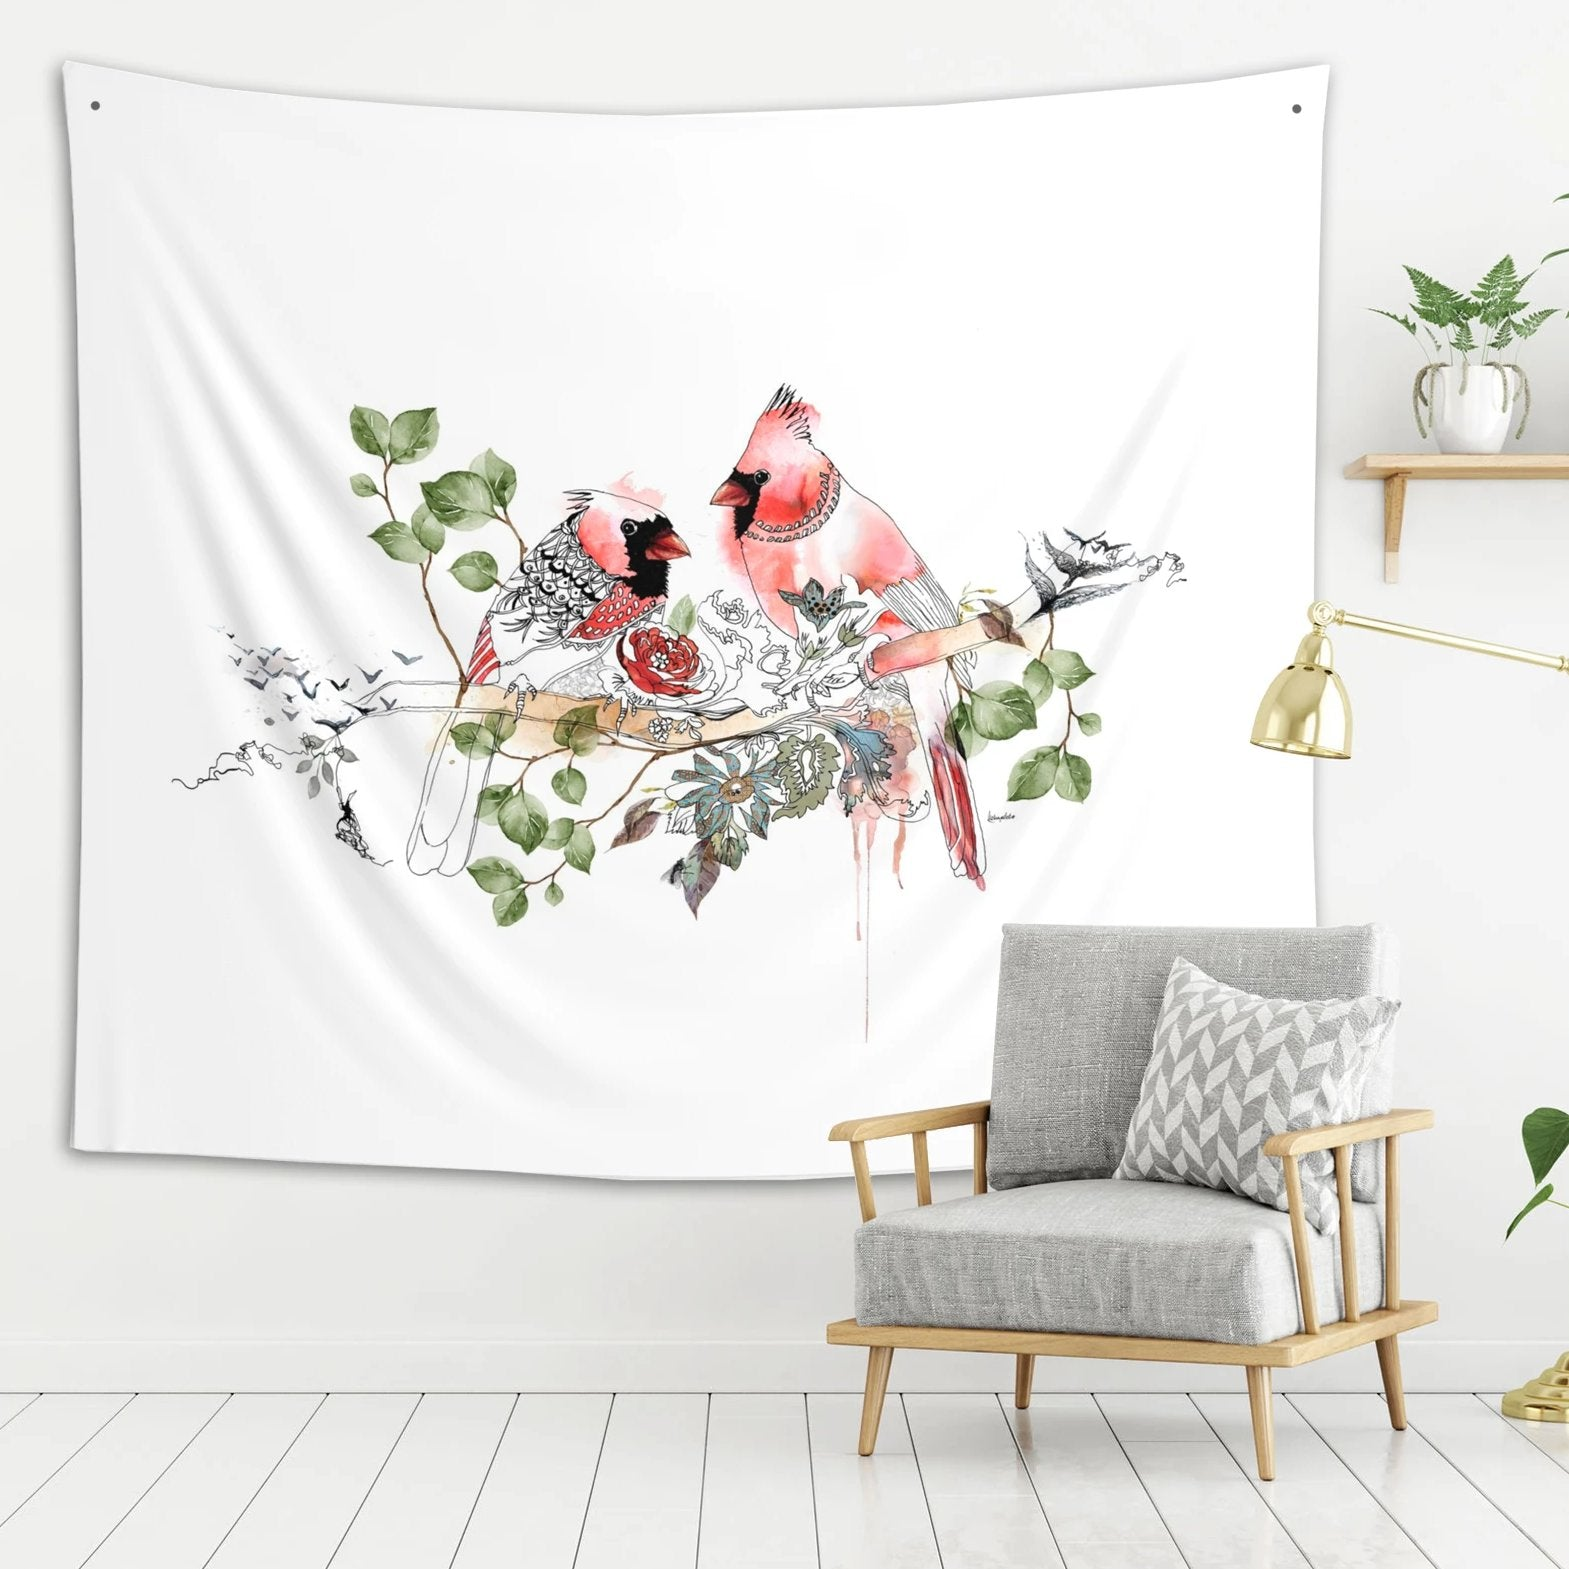 Red birds wall tapestry, hanged on a white wall  | Liz Kapiloto Art & Design